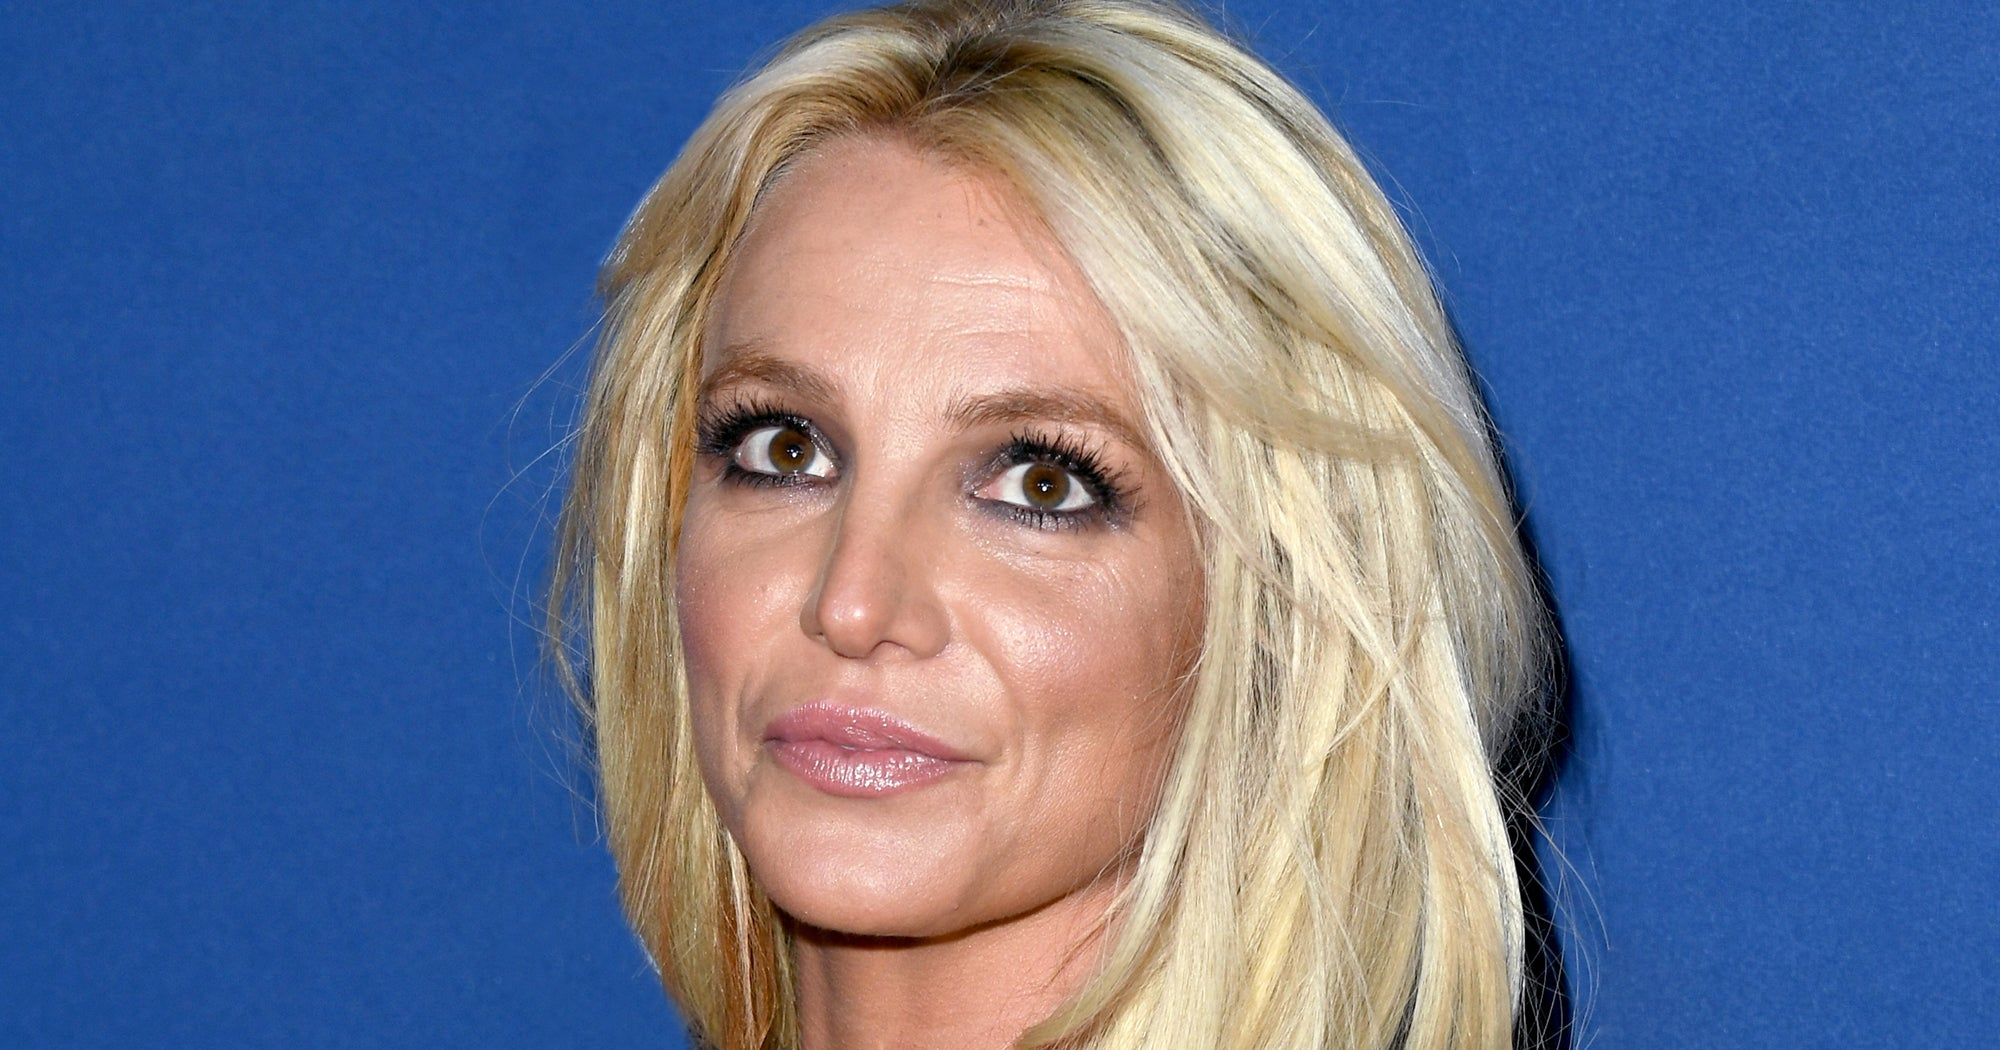 Britney Spears Says She's Not Allowed To Remove Her IUD. Here's What This Means